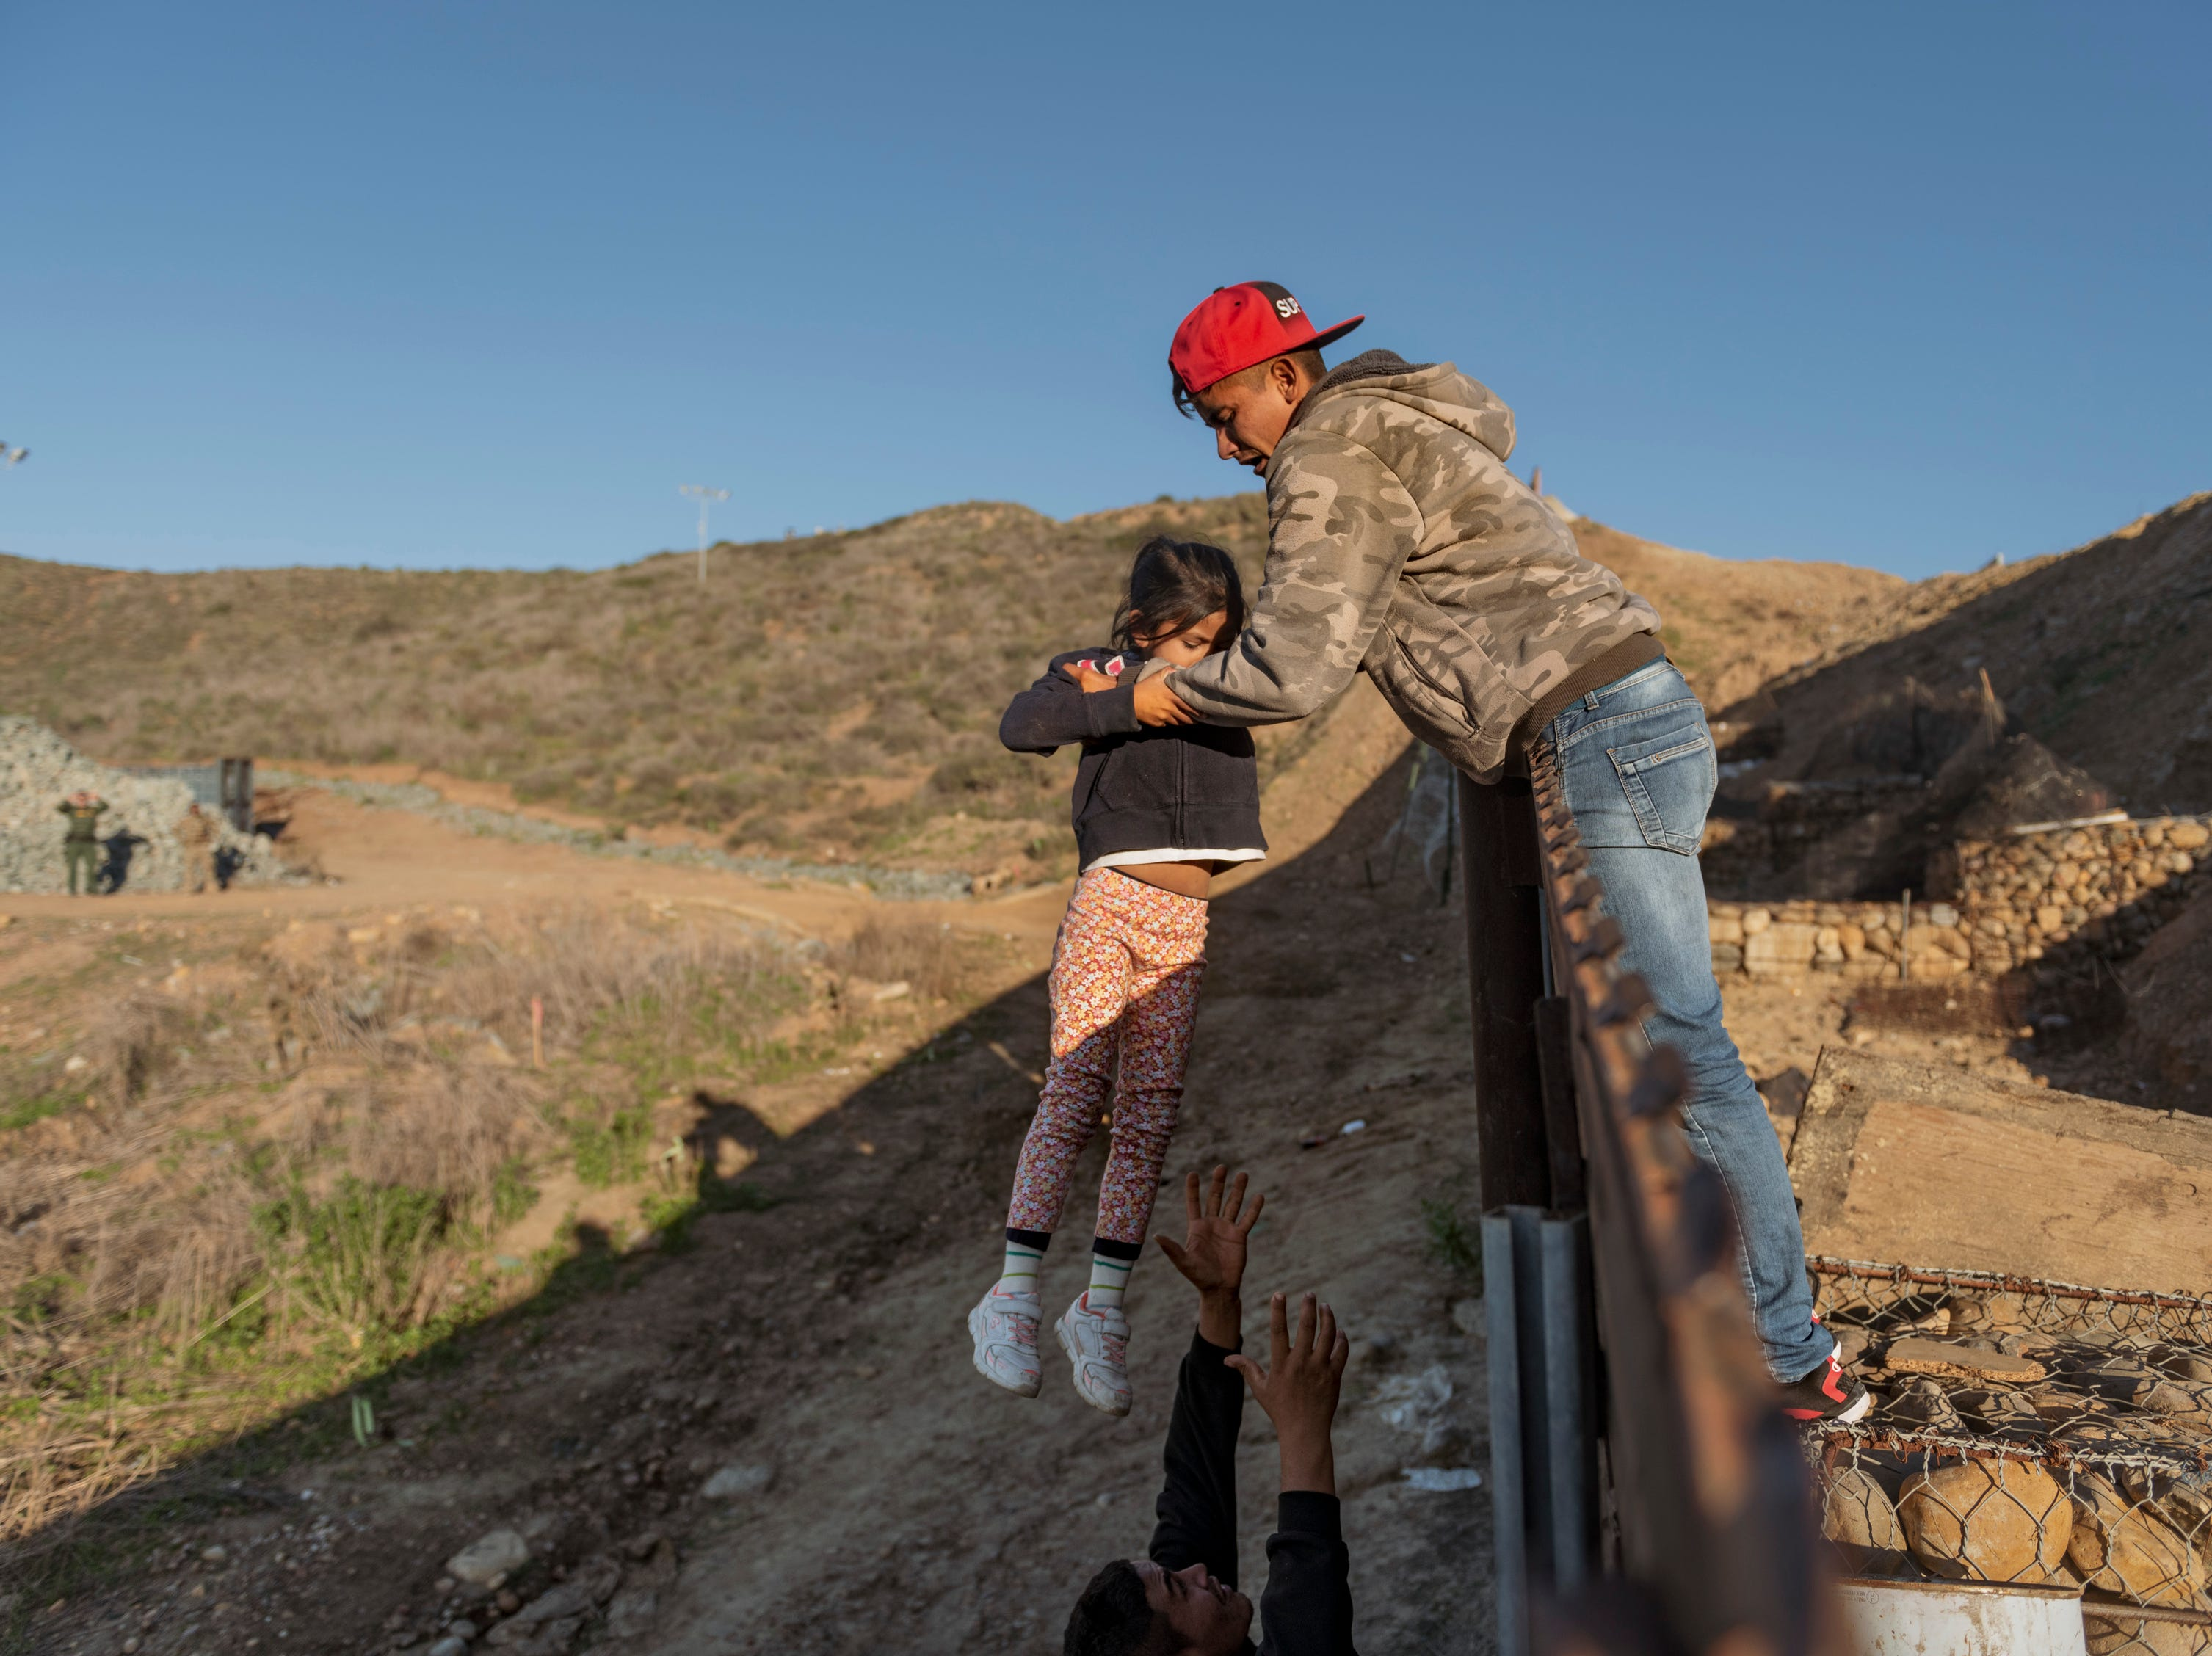 A migrant from Honduras pass a child to her father after he jumped the border fence to get into the U.S. side to San Diego, Calif., from Tijuana, Mexico, Thursday, Jan. 3, 2019.